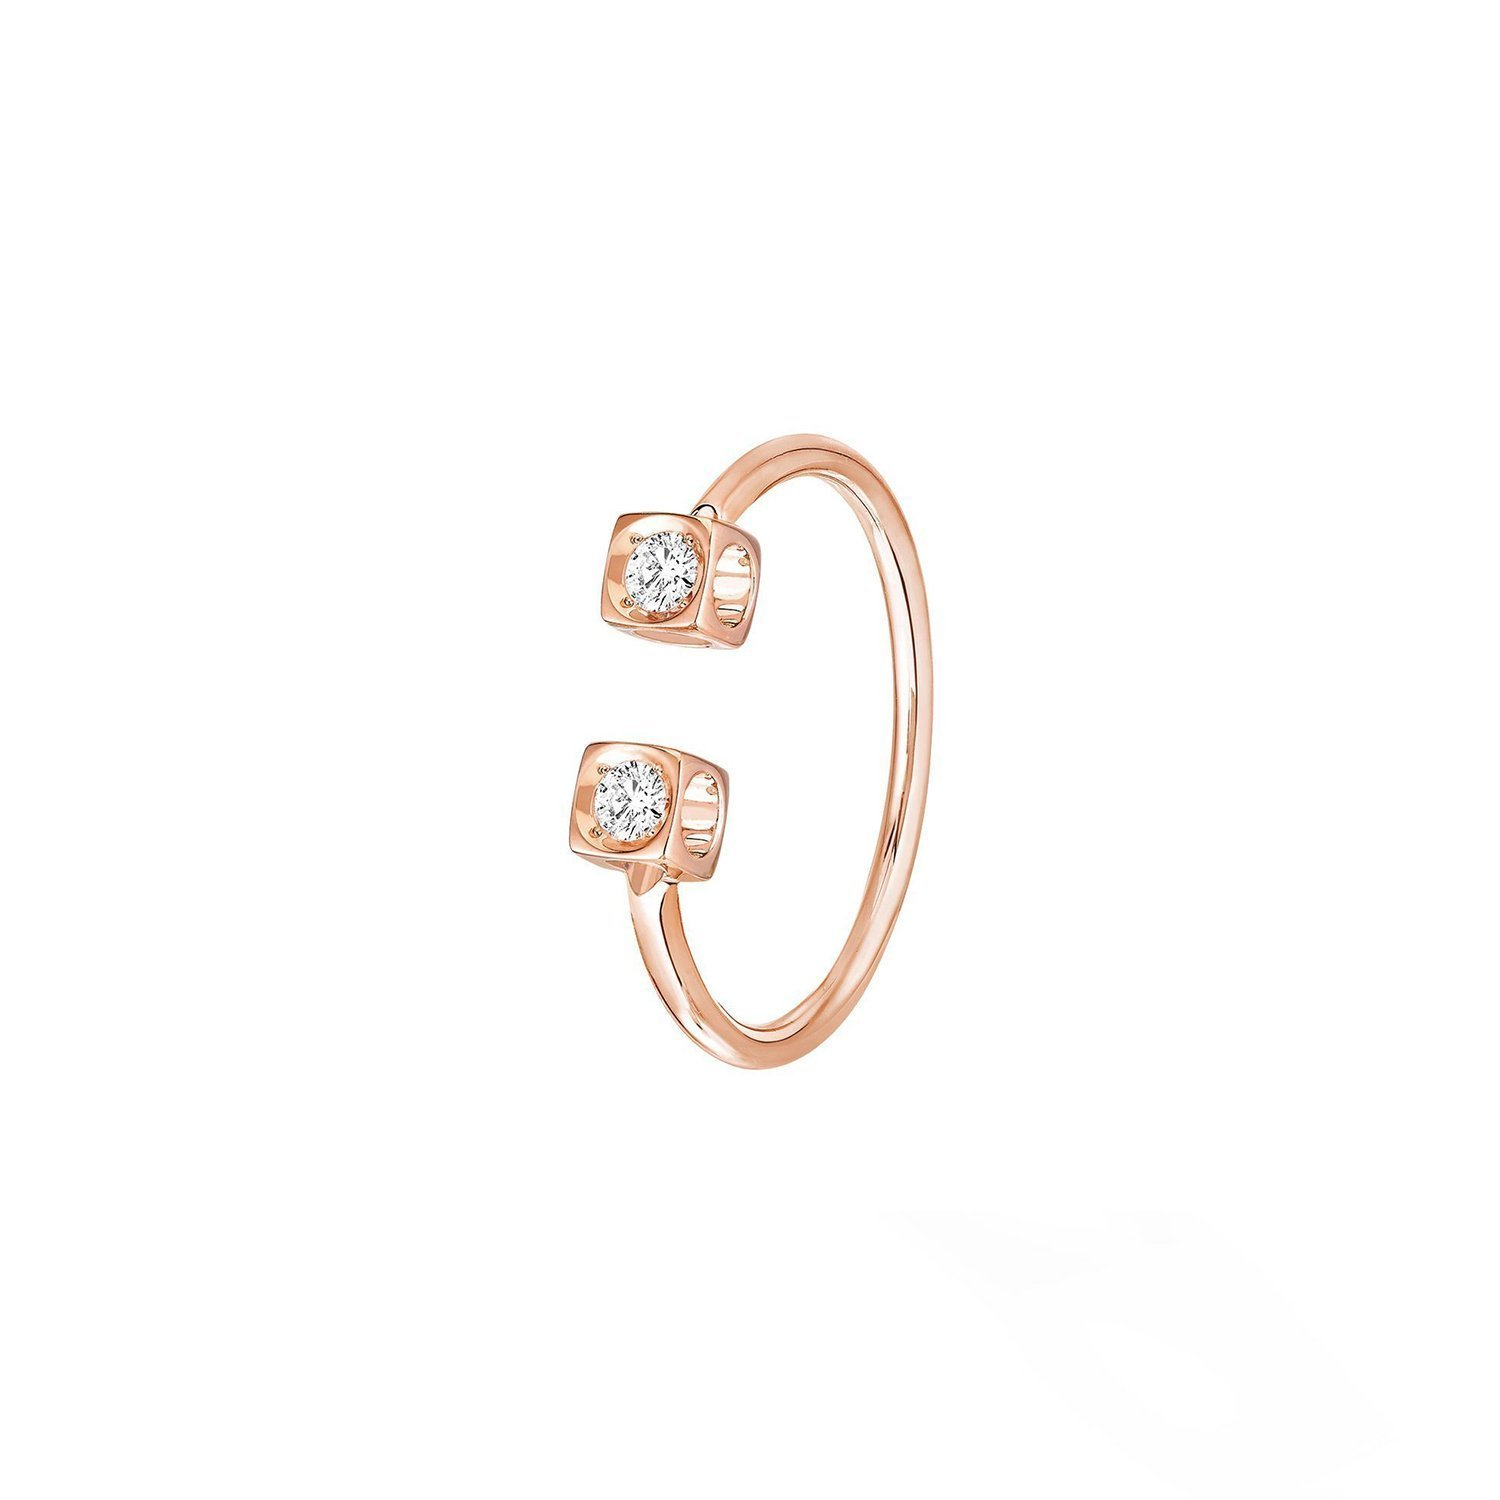 Bague dinh van Le Cube Diamant en or rose et diamants vue 1